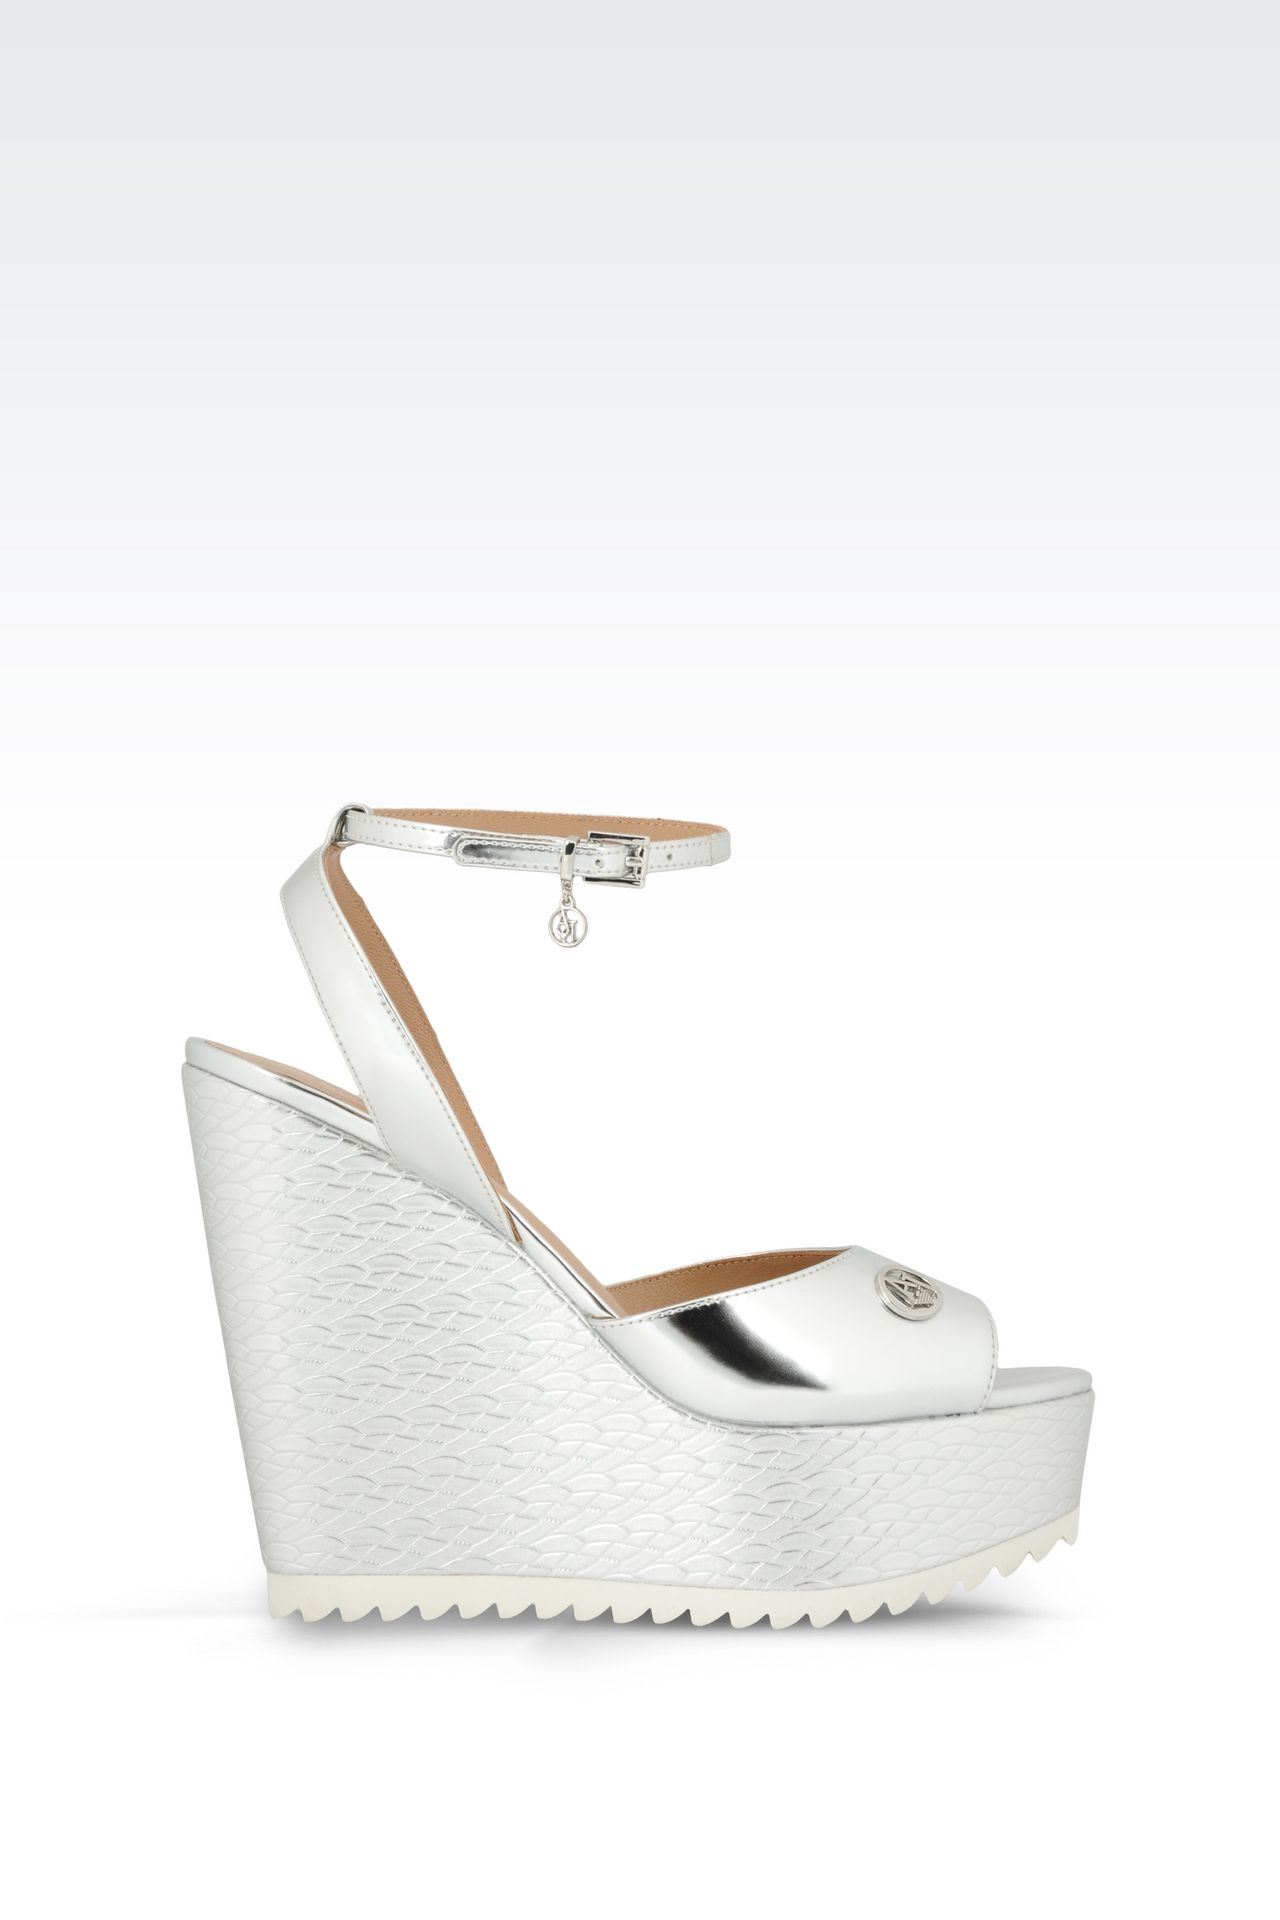 WEDGE SANDAL IN MIRROR FINISH FAUX LEATHER: Wedges Women by Armani - 0